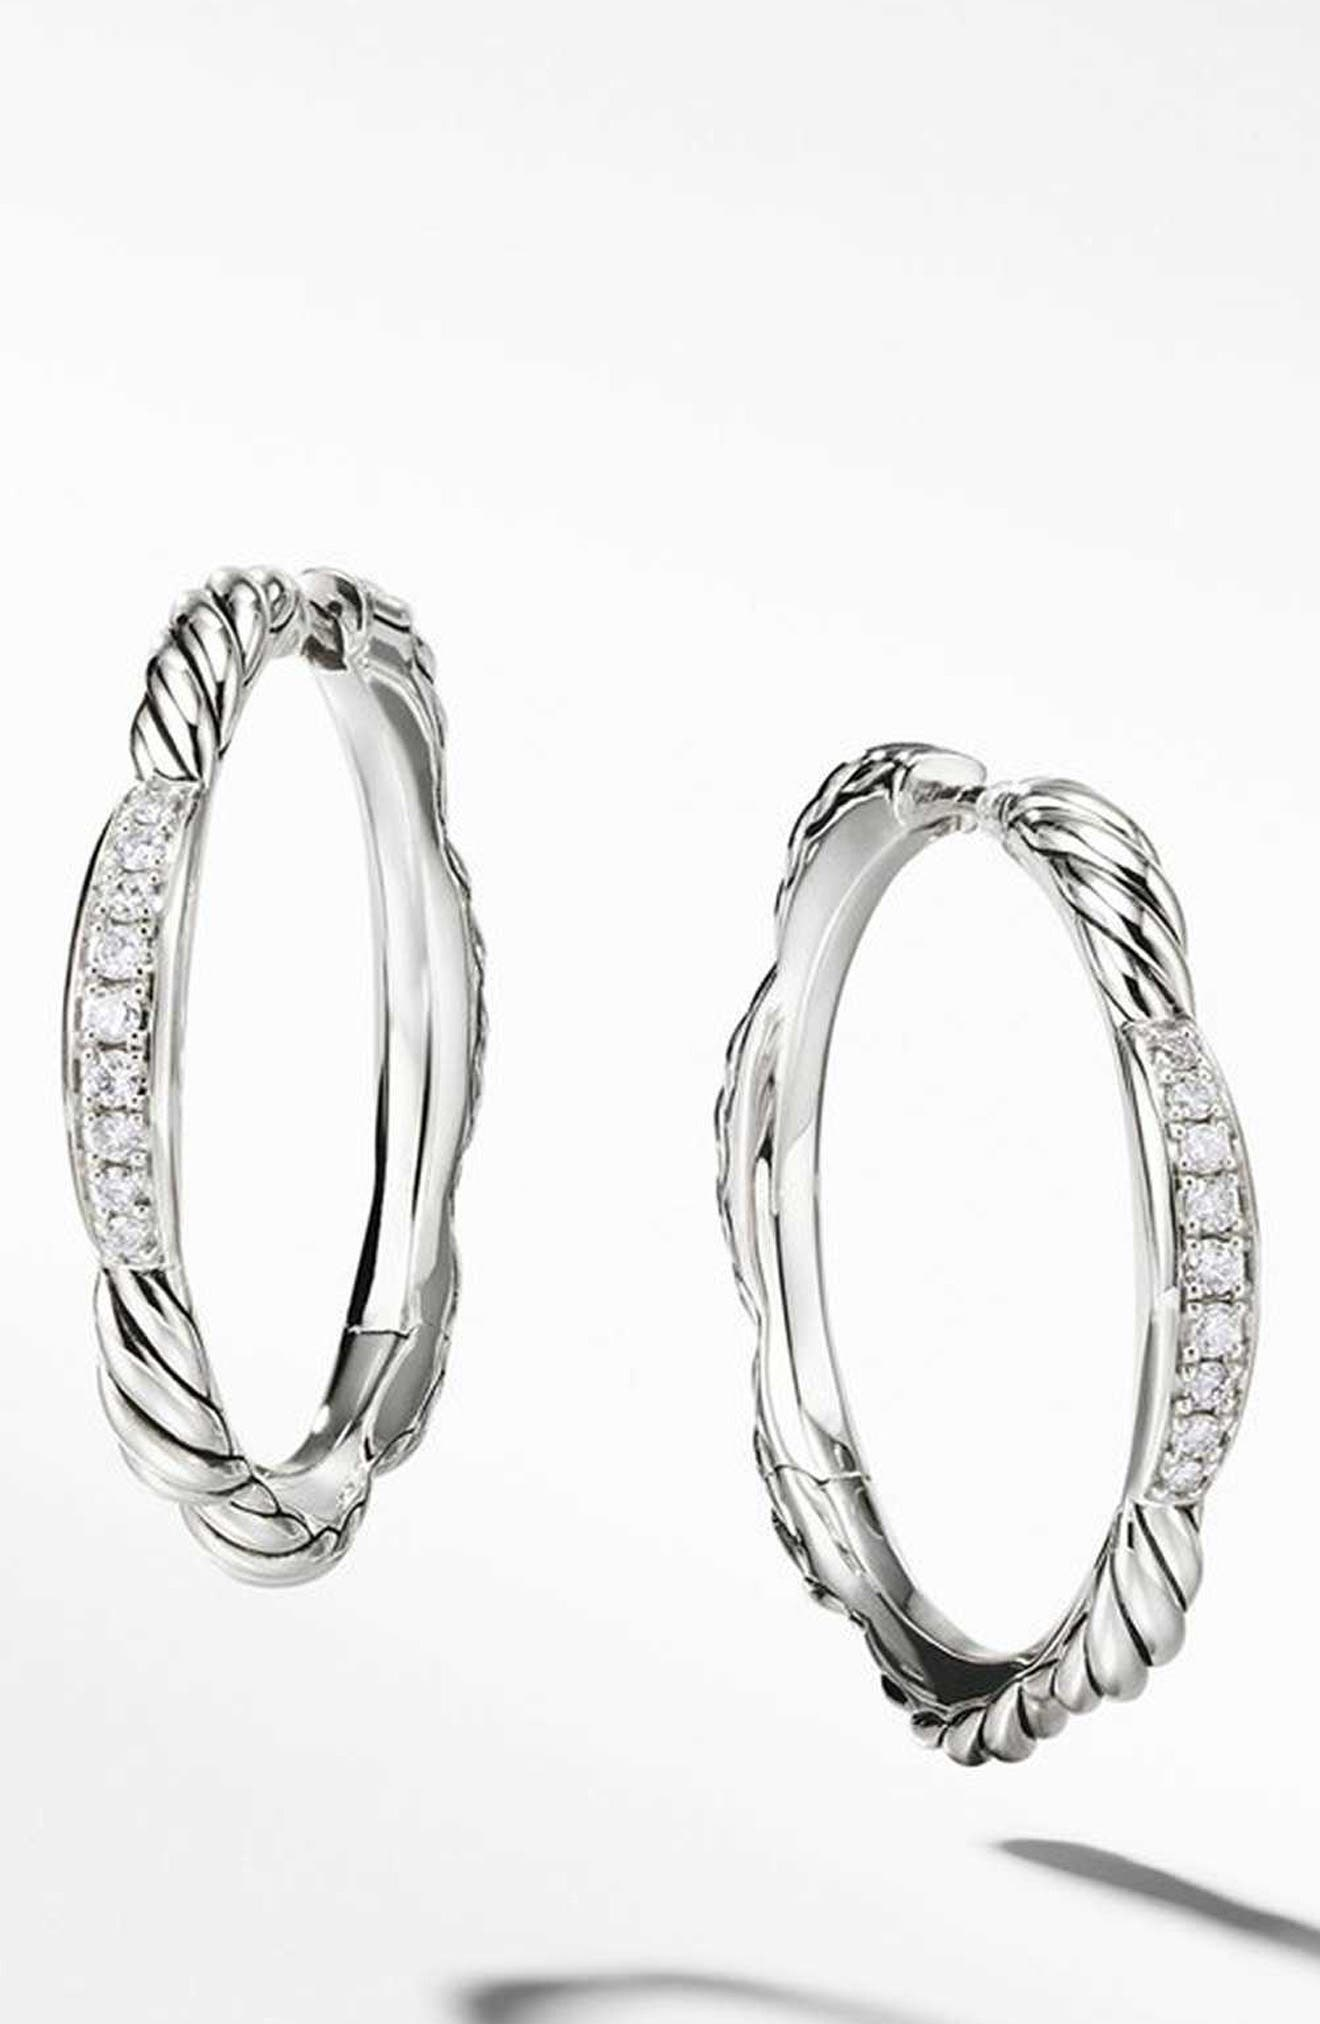 Tides Collection Hoop Earrings with Diamonds,                             Main thumbnail 1, color,                             STERLING SILVER/ DIAMOND